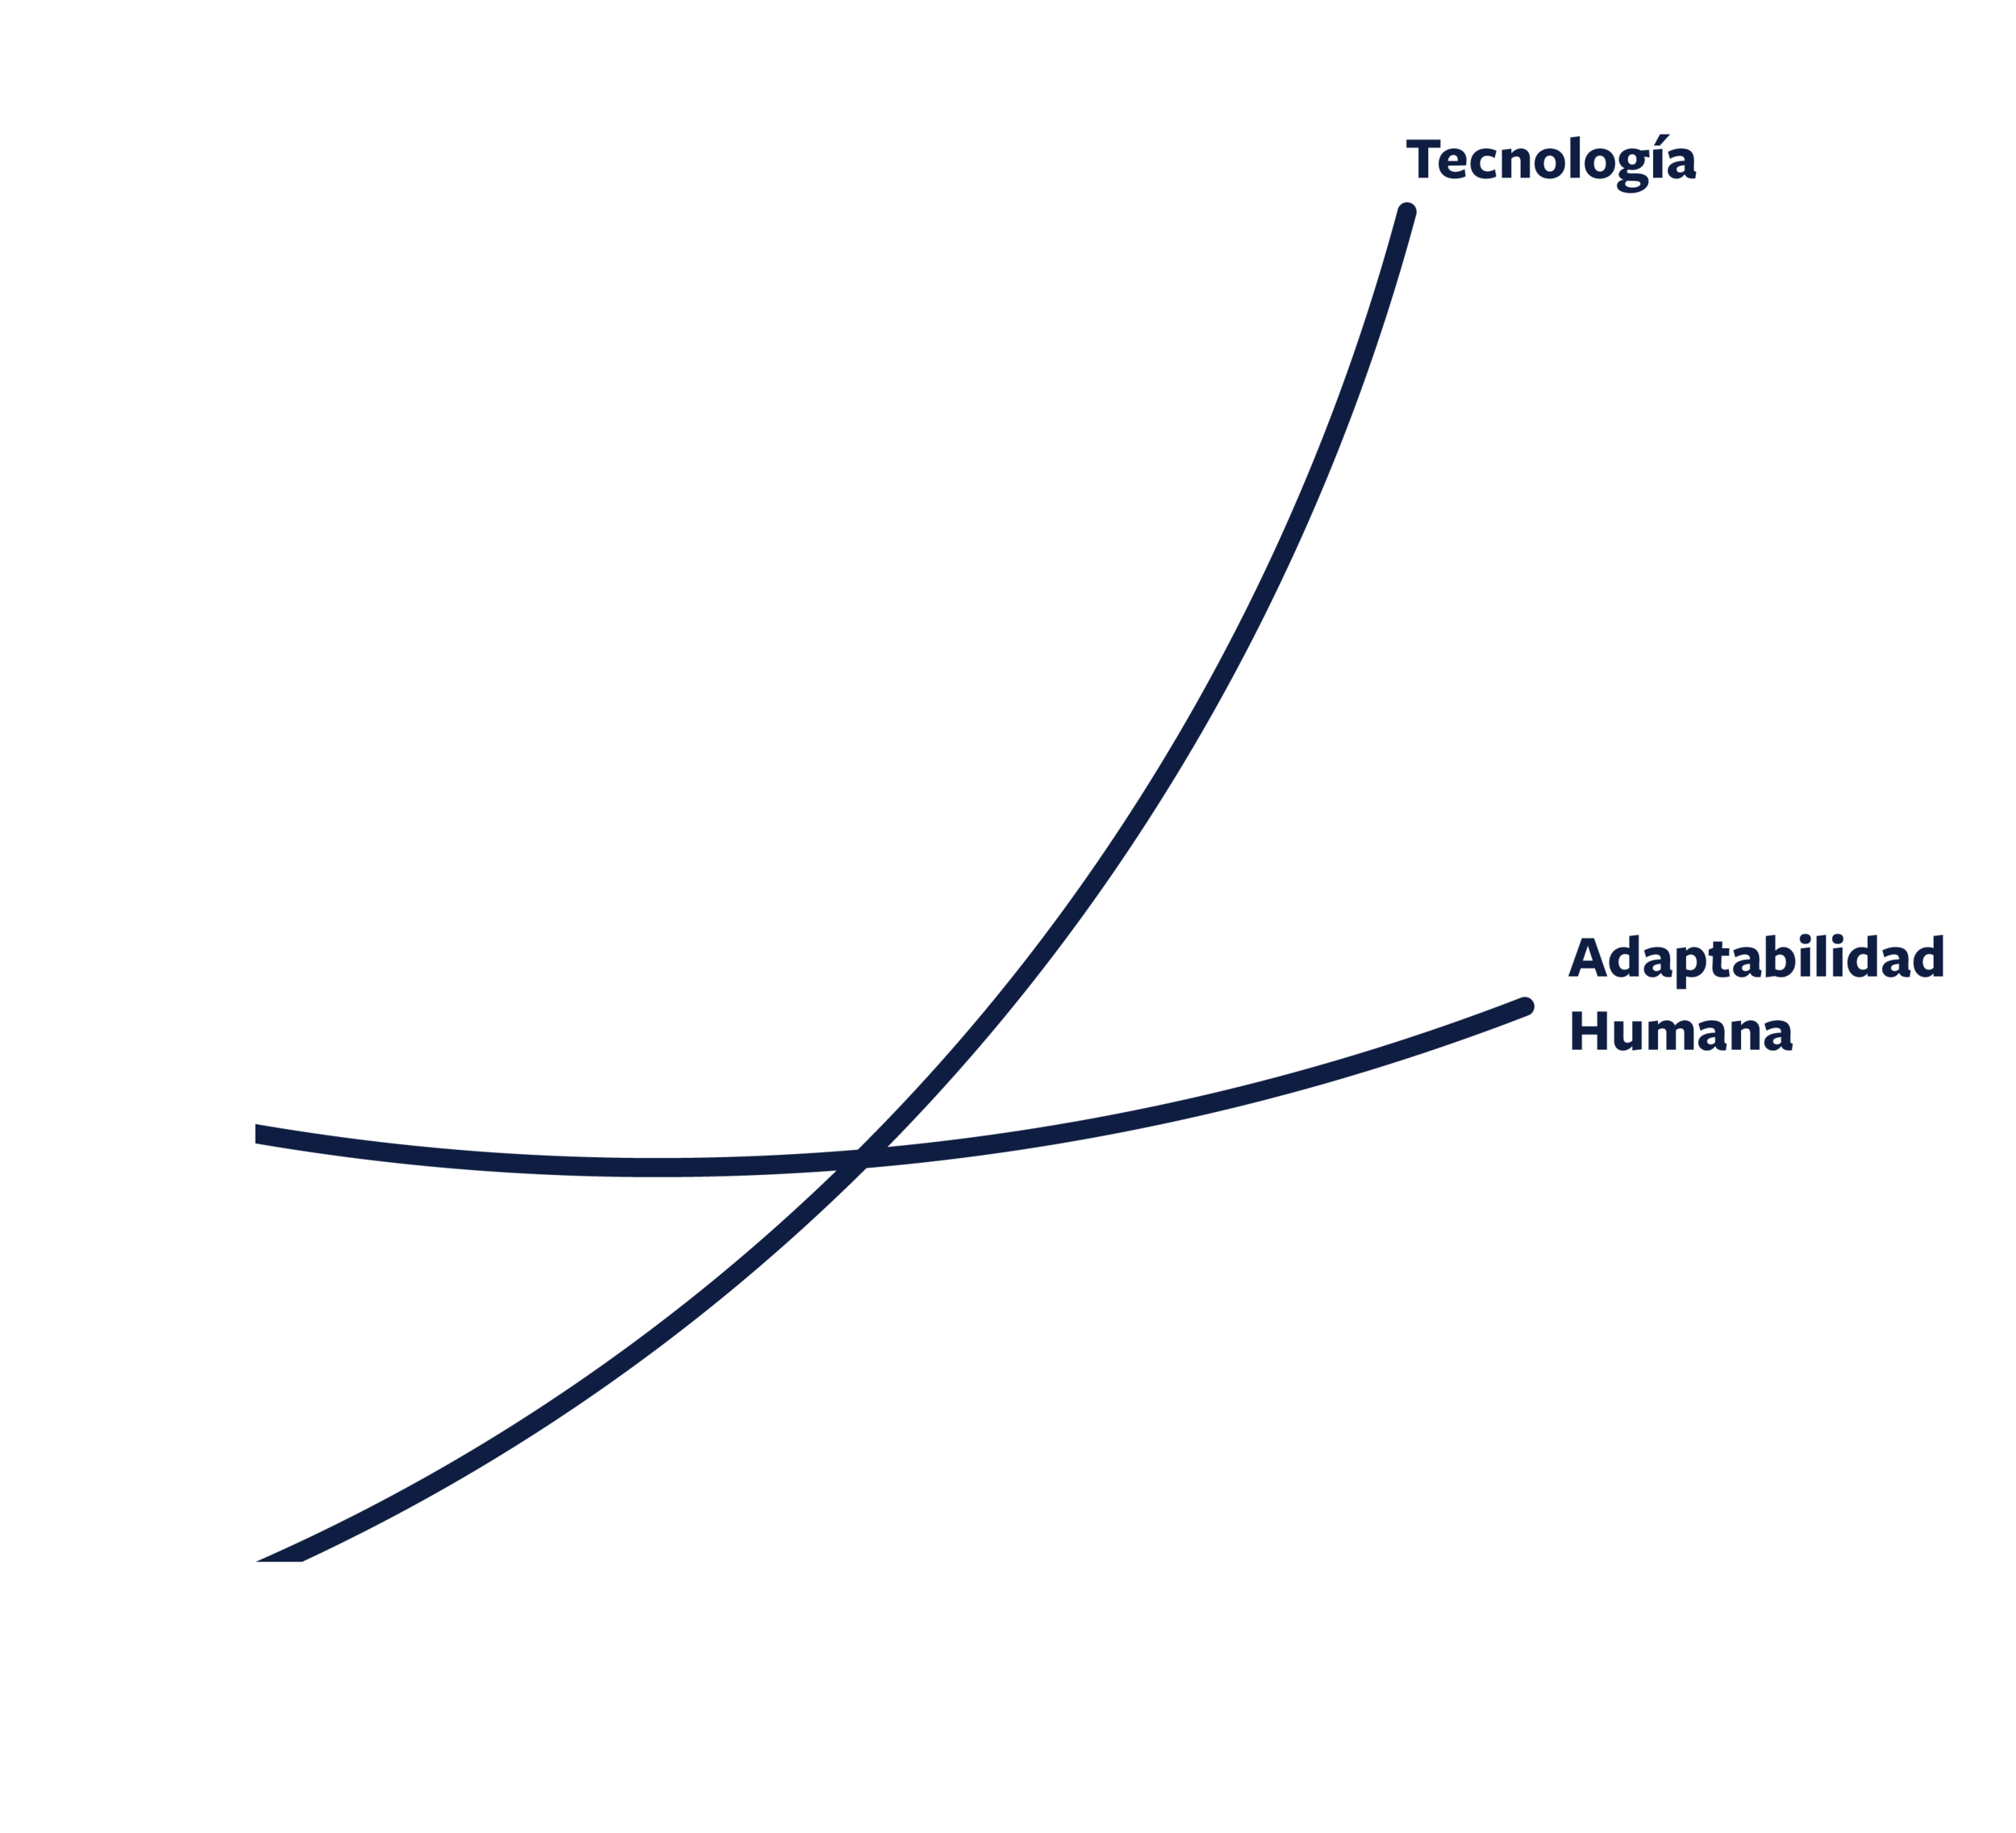 Moore's Law  is the observation that the number of transistors in a dense integrated circuit doubles about every two years